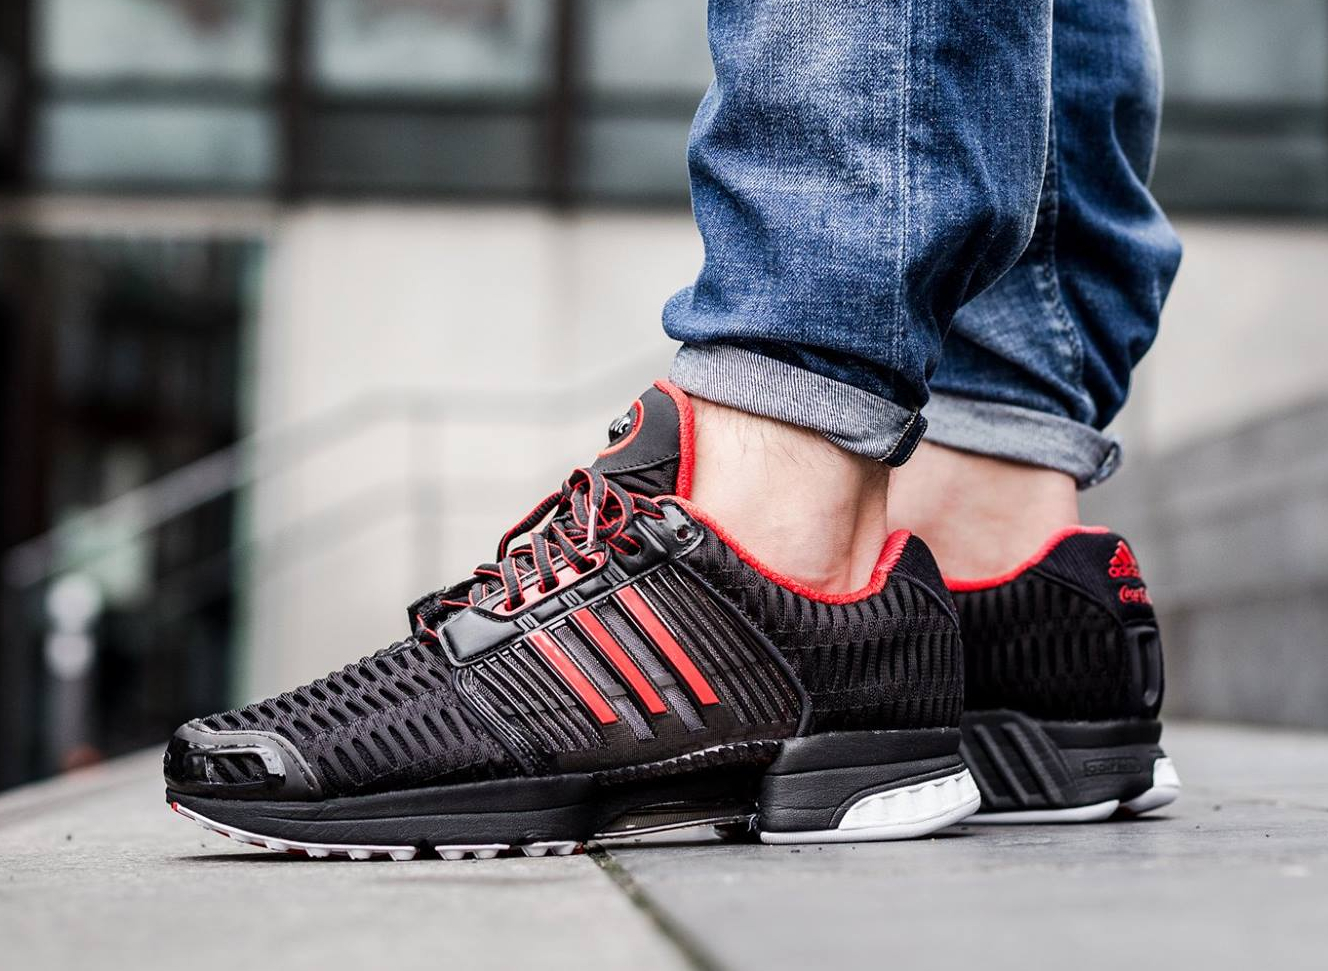 detailed pictures cdf27 ca47c adidas climacool chaussure,remise chaussure adidas climacool 1 blanc homme